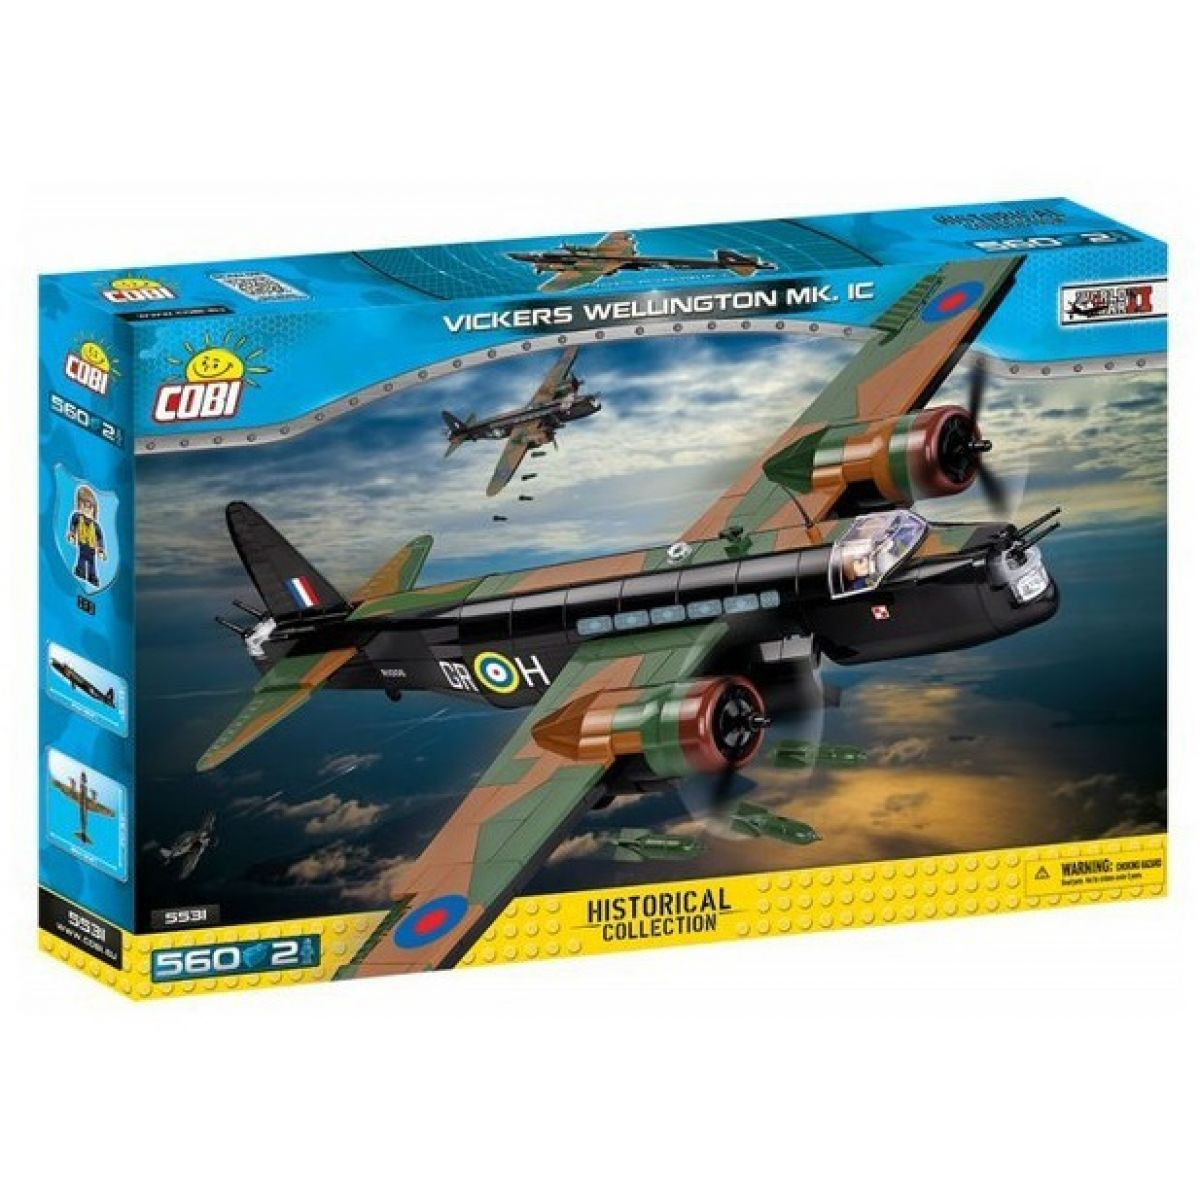 Cobi Malá armáda 5531 WW II Vickers Wellington Mk. IC